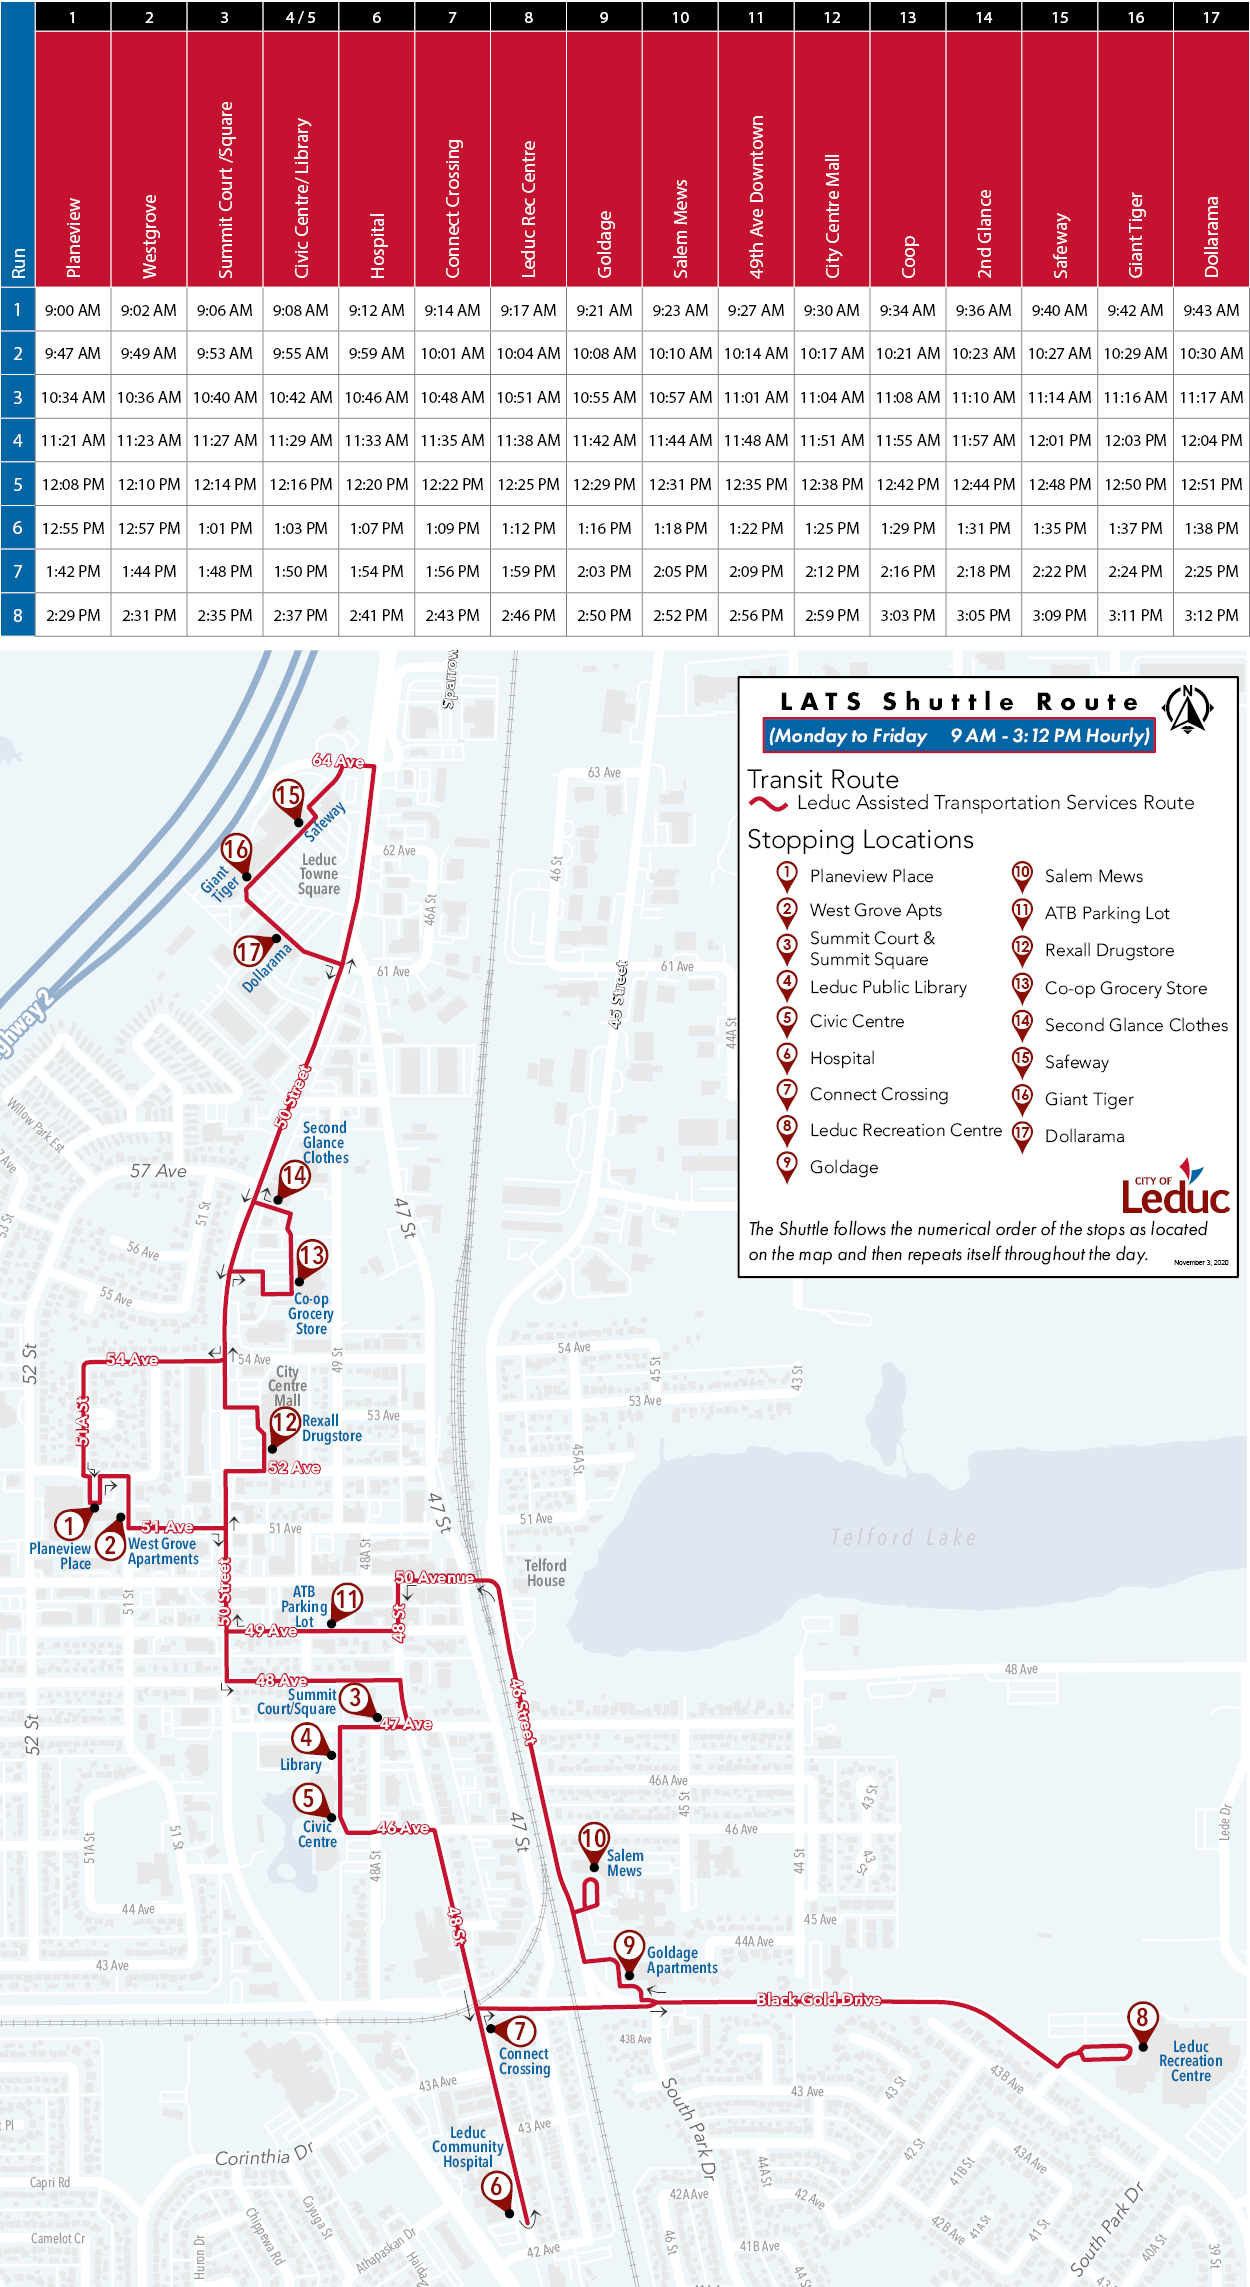 Image of the LATS shuttle schedule and map